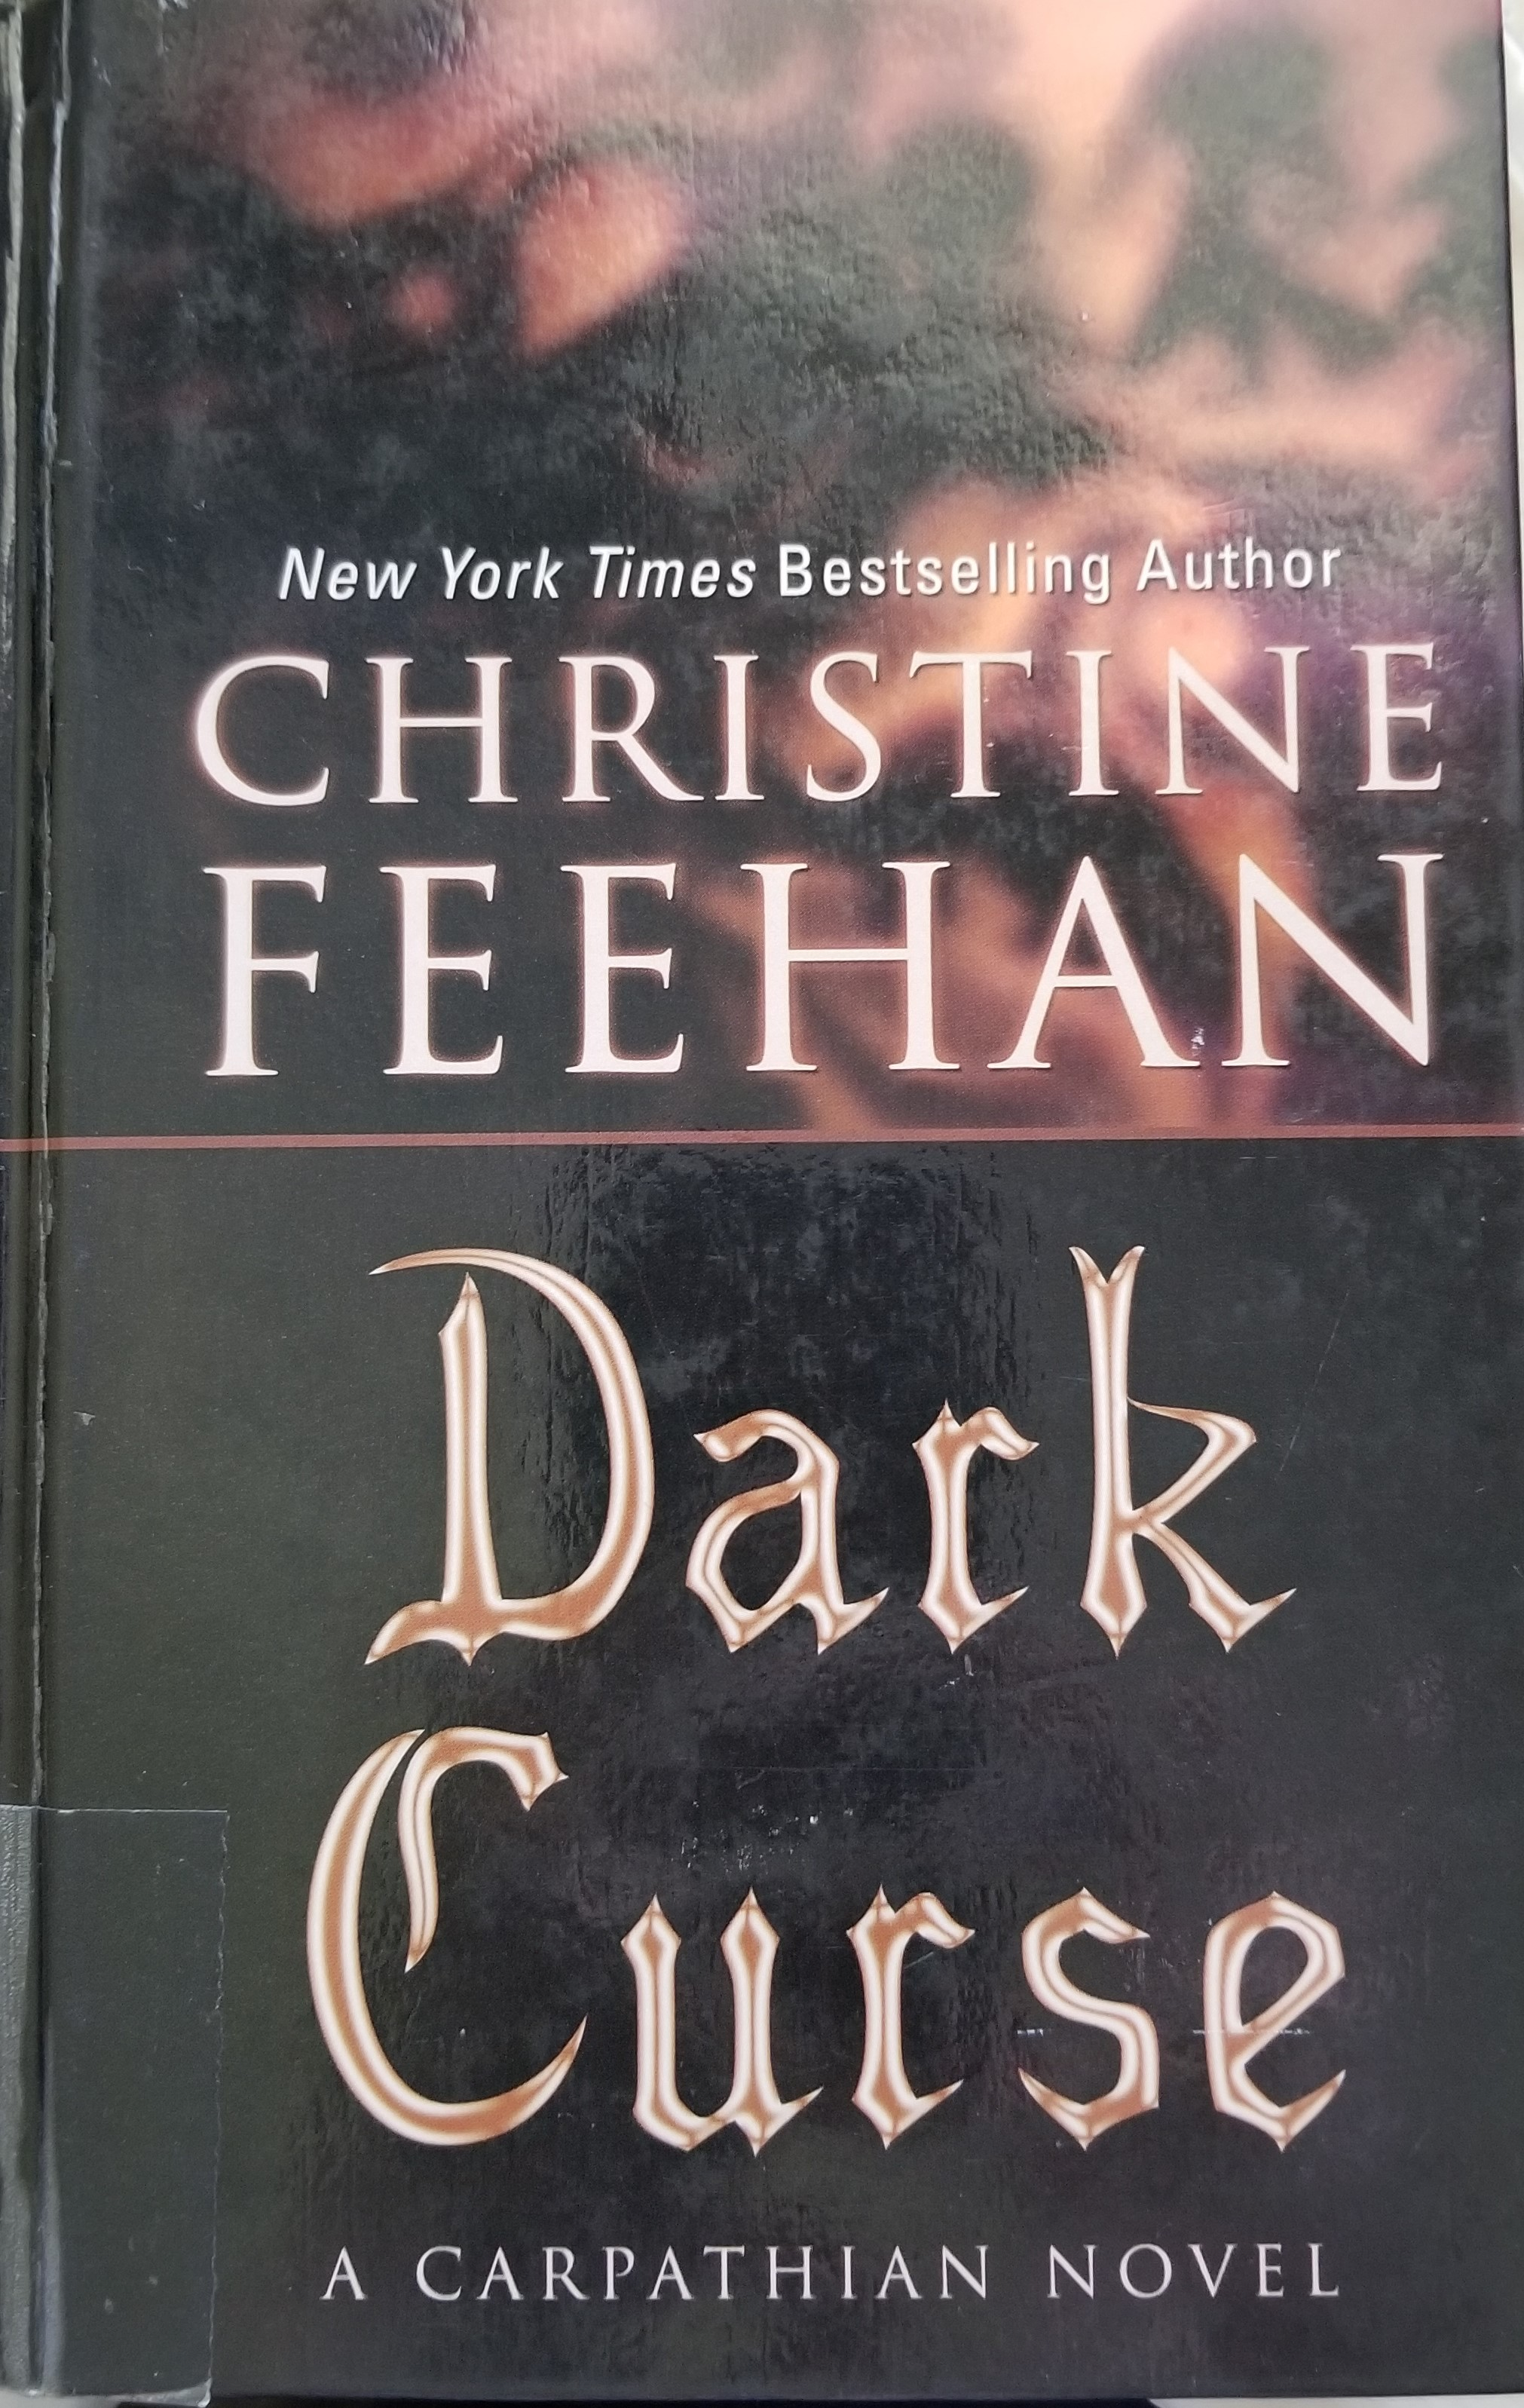 I found yet another book cover for Dark Curse at the library!!